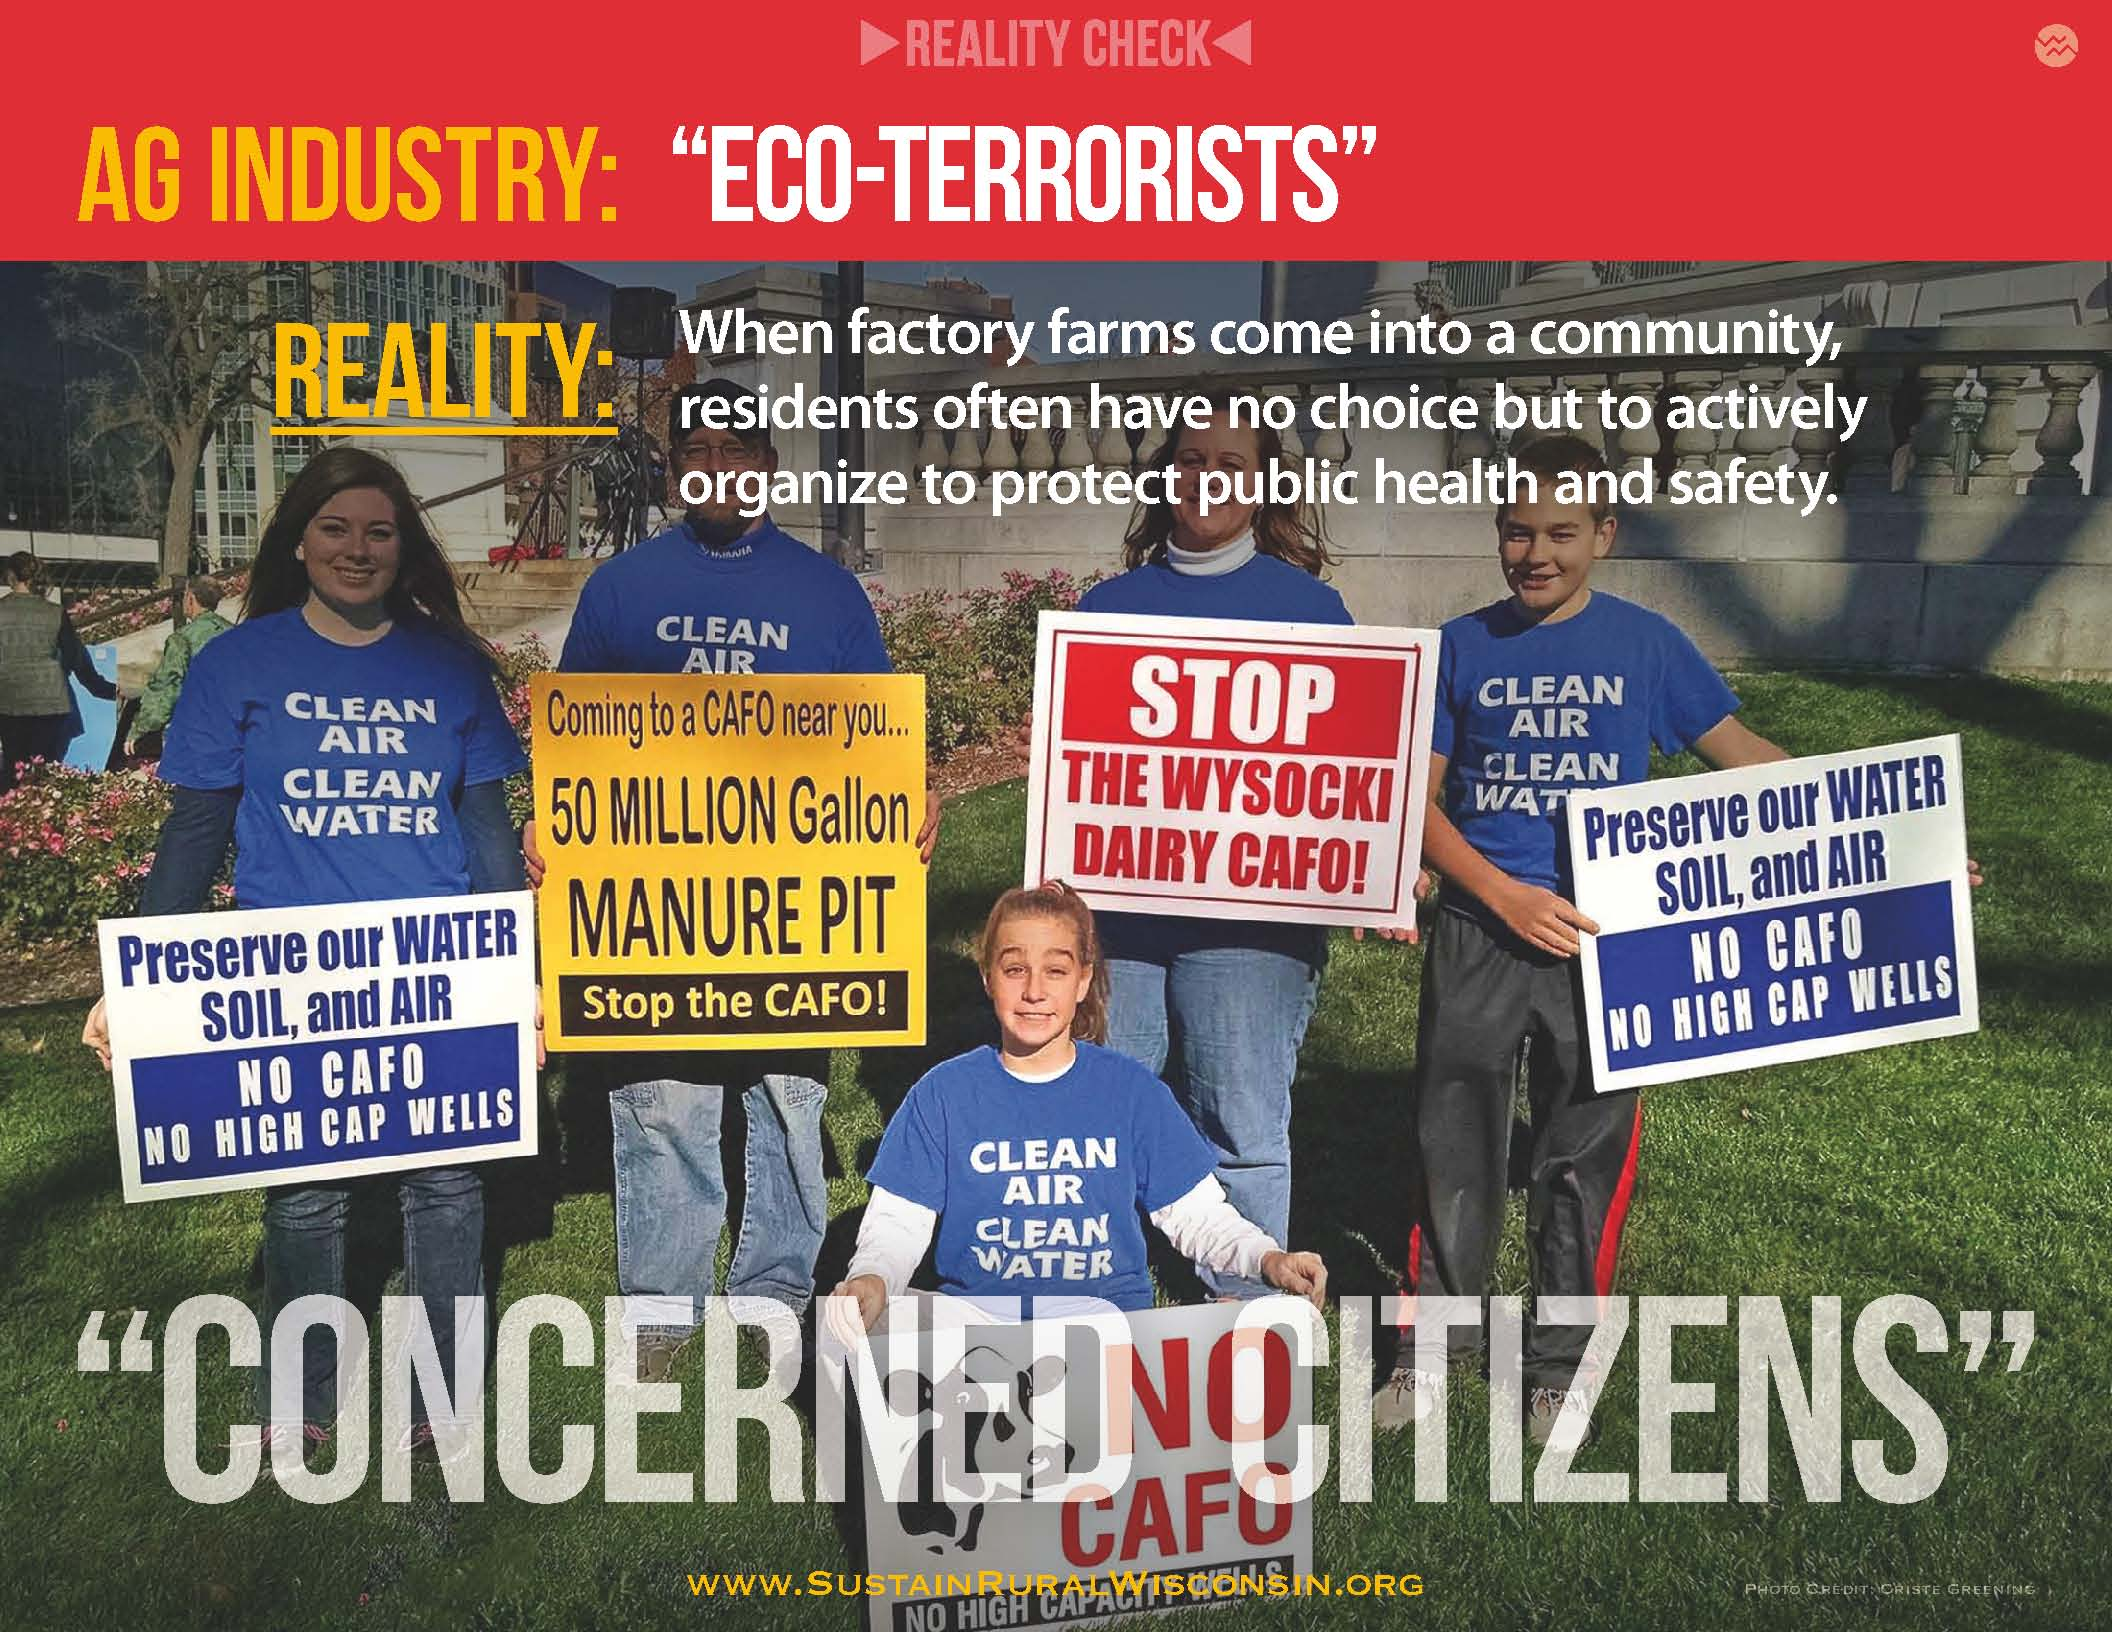 RC-SUSTAIN_RURAL_WISCONSIN OK web_Page_24.jpg